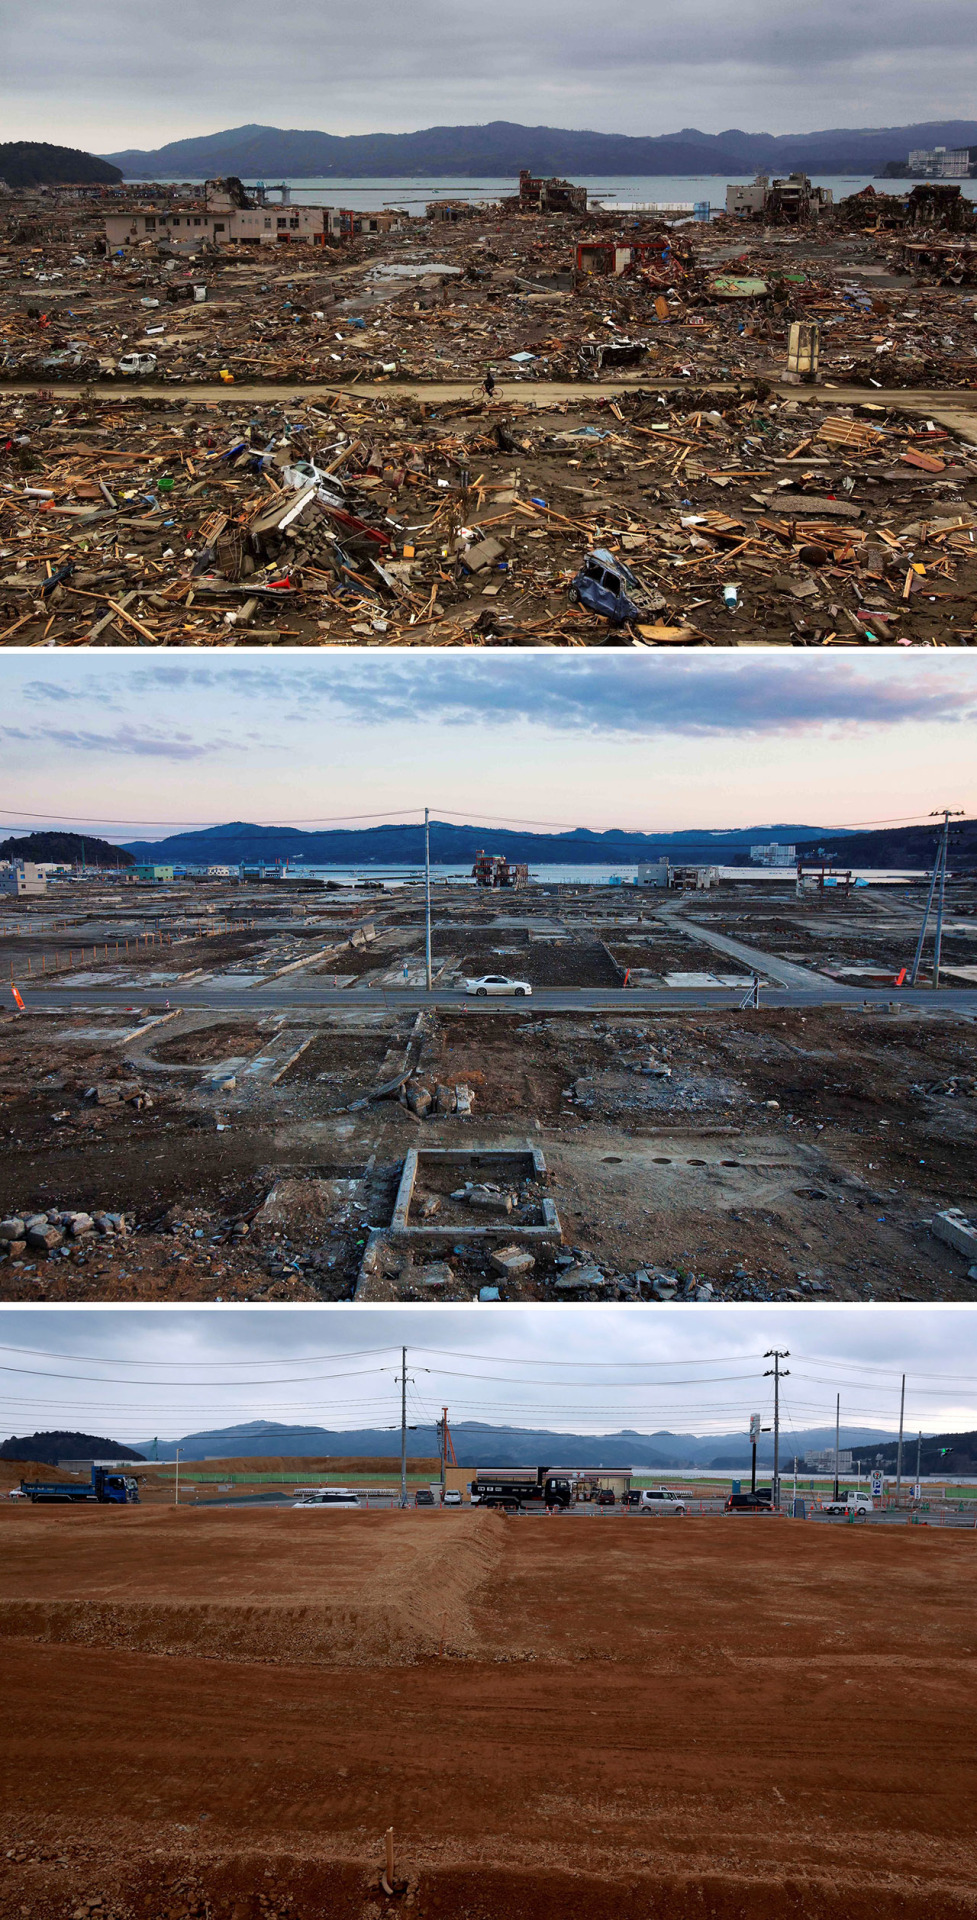 In this combination photo, a Japanese survivor of the earthquake and tsunami rides his bicycle through the leveled city of Minamisanriku, Japan, on March 15, 2011, top, a car drives through the same spot on Feb. 23, 2012, center, and trucks and cars drive through the same area on Saturday, March 5, 2016. Five years after the disaster, construction work is clearly underway but far from done. Rebuilt roads stretch to the horizon between still largely vacant expanses. It is a massive undertaking to raise the ground level of entire neighborhoods, to better protect them from inundation, before rebuilding from scratch. (AP Photo/David Guttenfelder and Eugene Hoshiko)